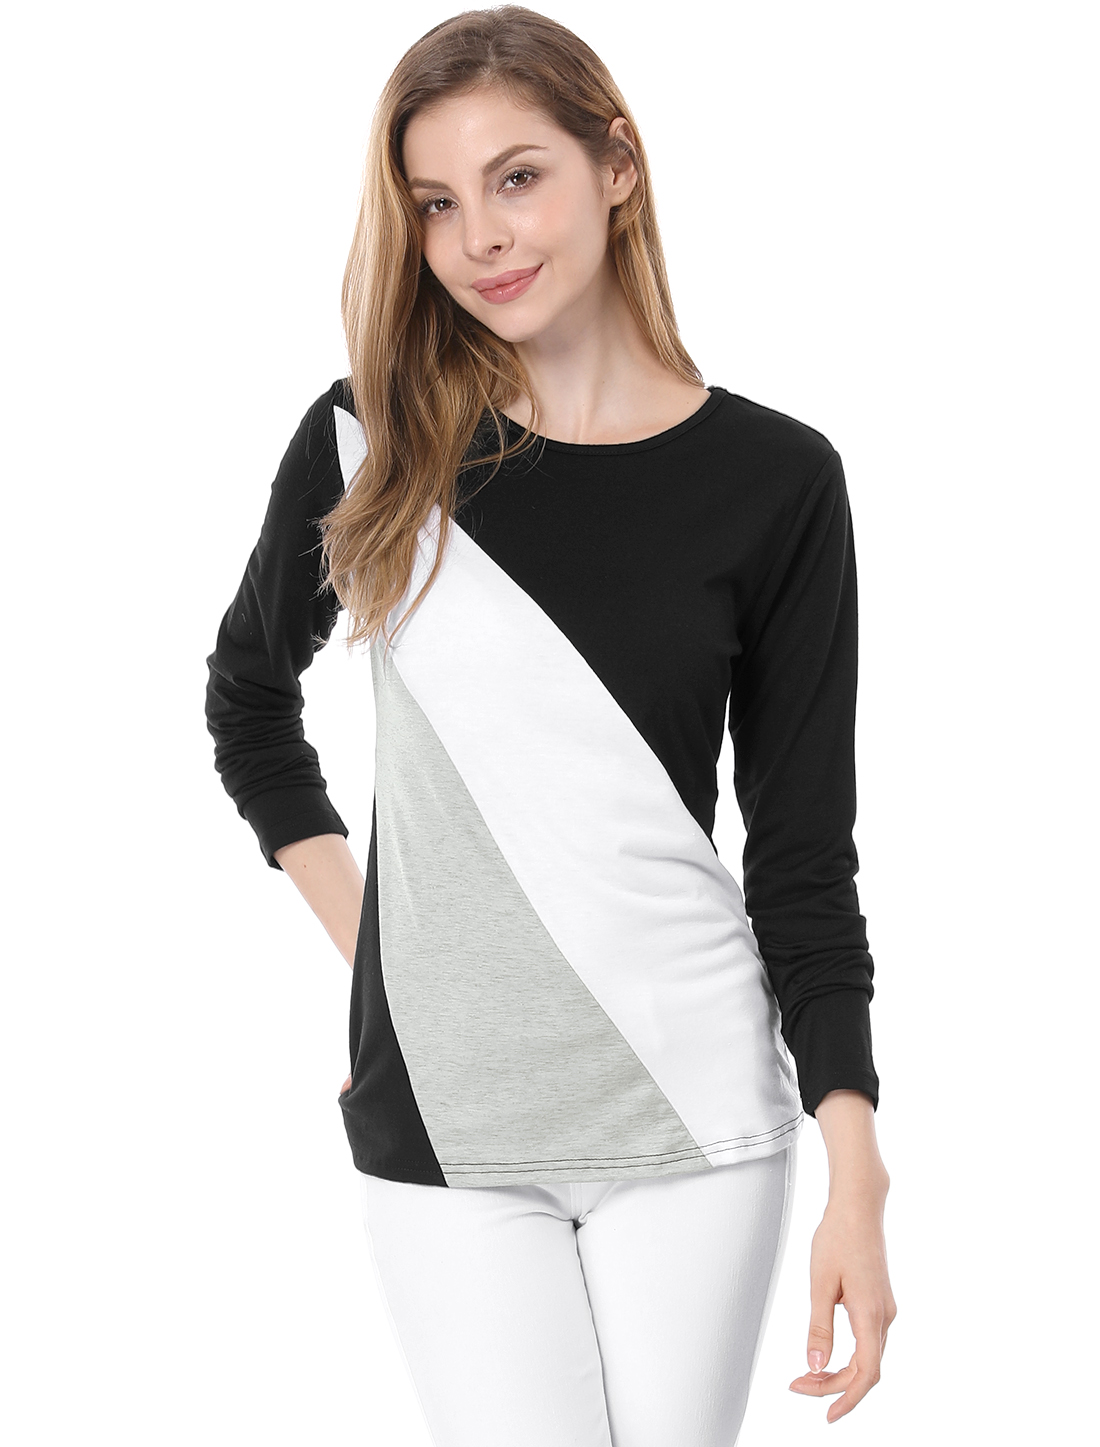 Women Color Block Round Neck Long Sleeve Slim T-shirt Black White M